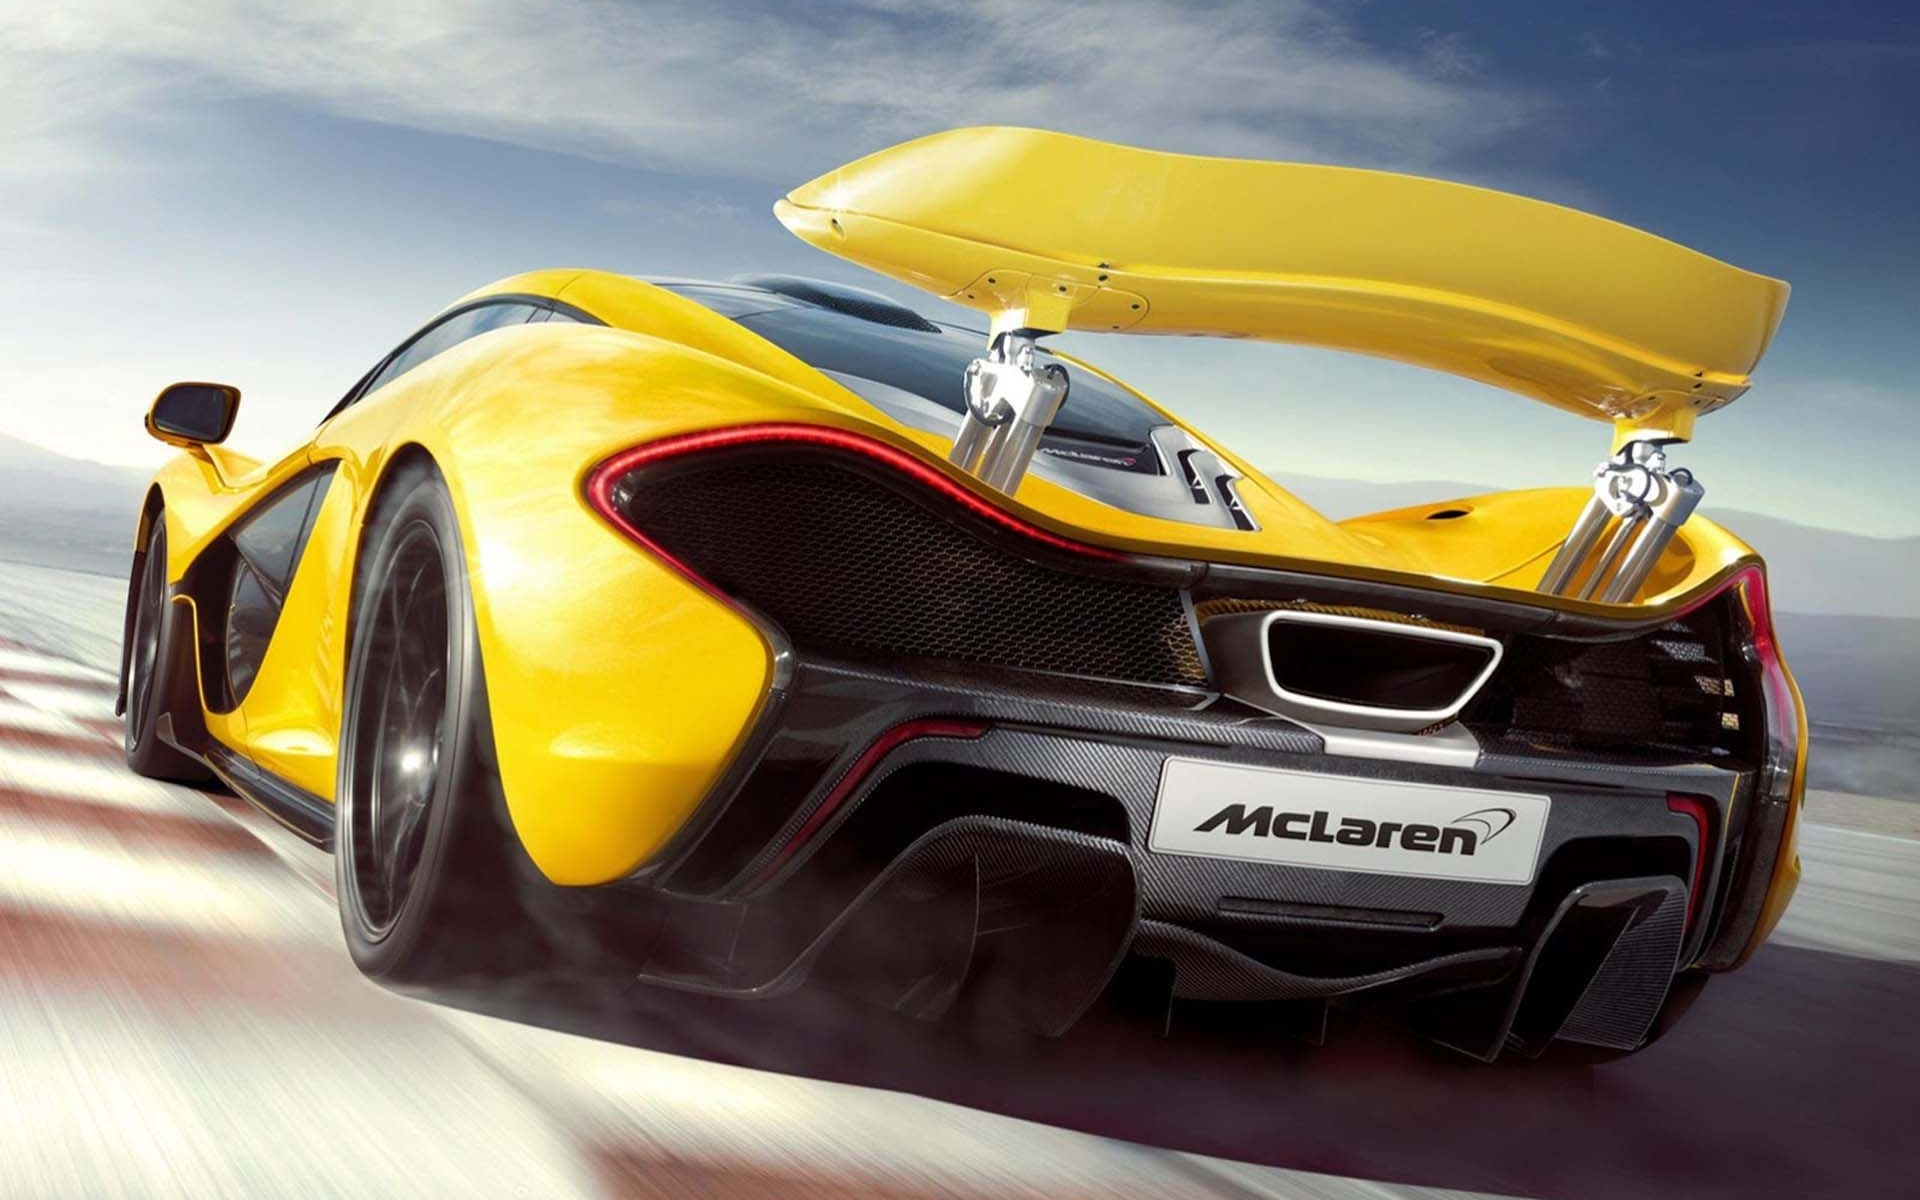 Mclaren P1 Hypercar wallpapers